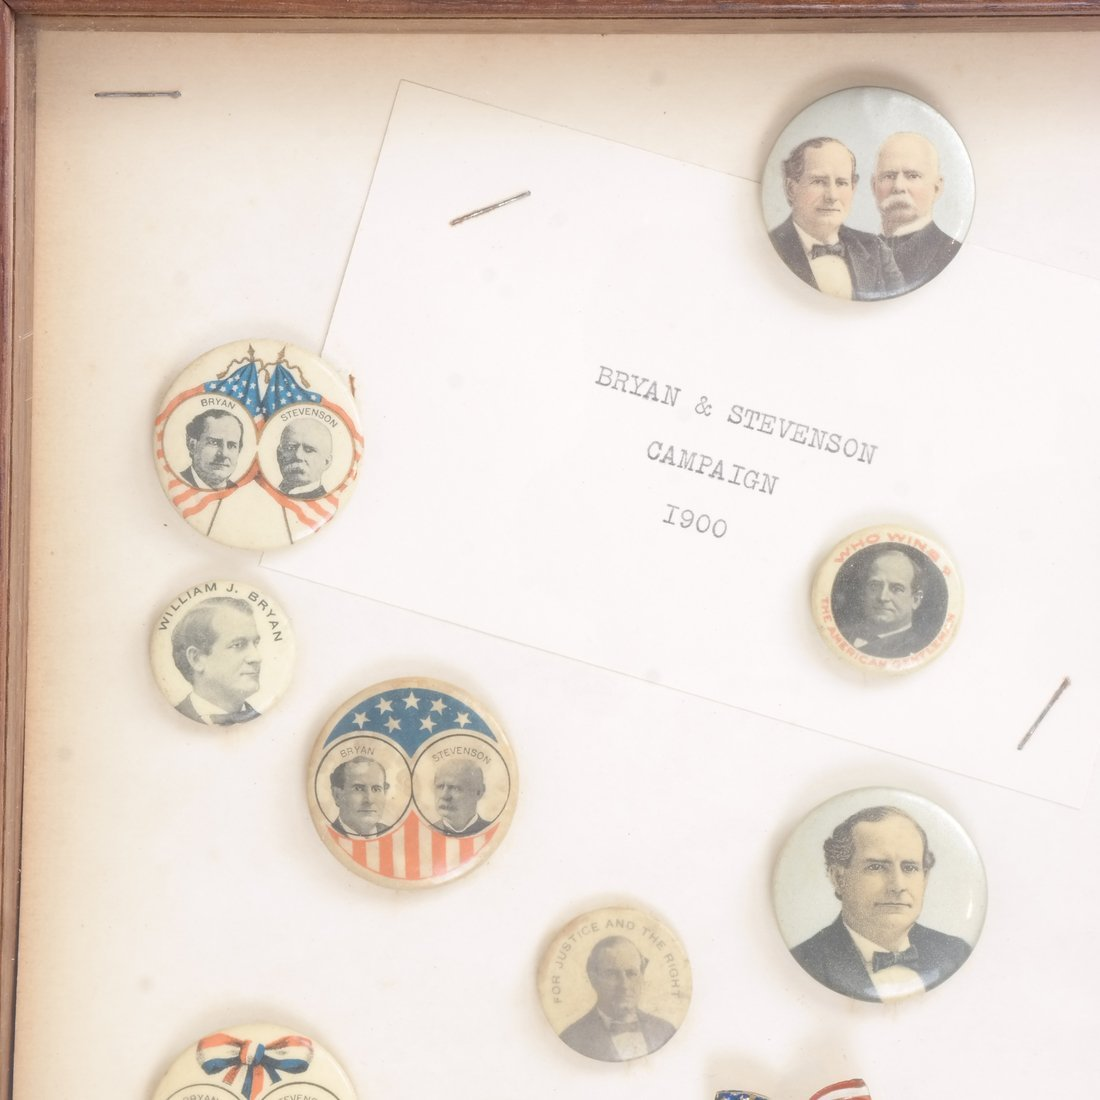 Monroe D. Ray Frame - Bryan and Wooley Campaigns 1900 - 2